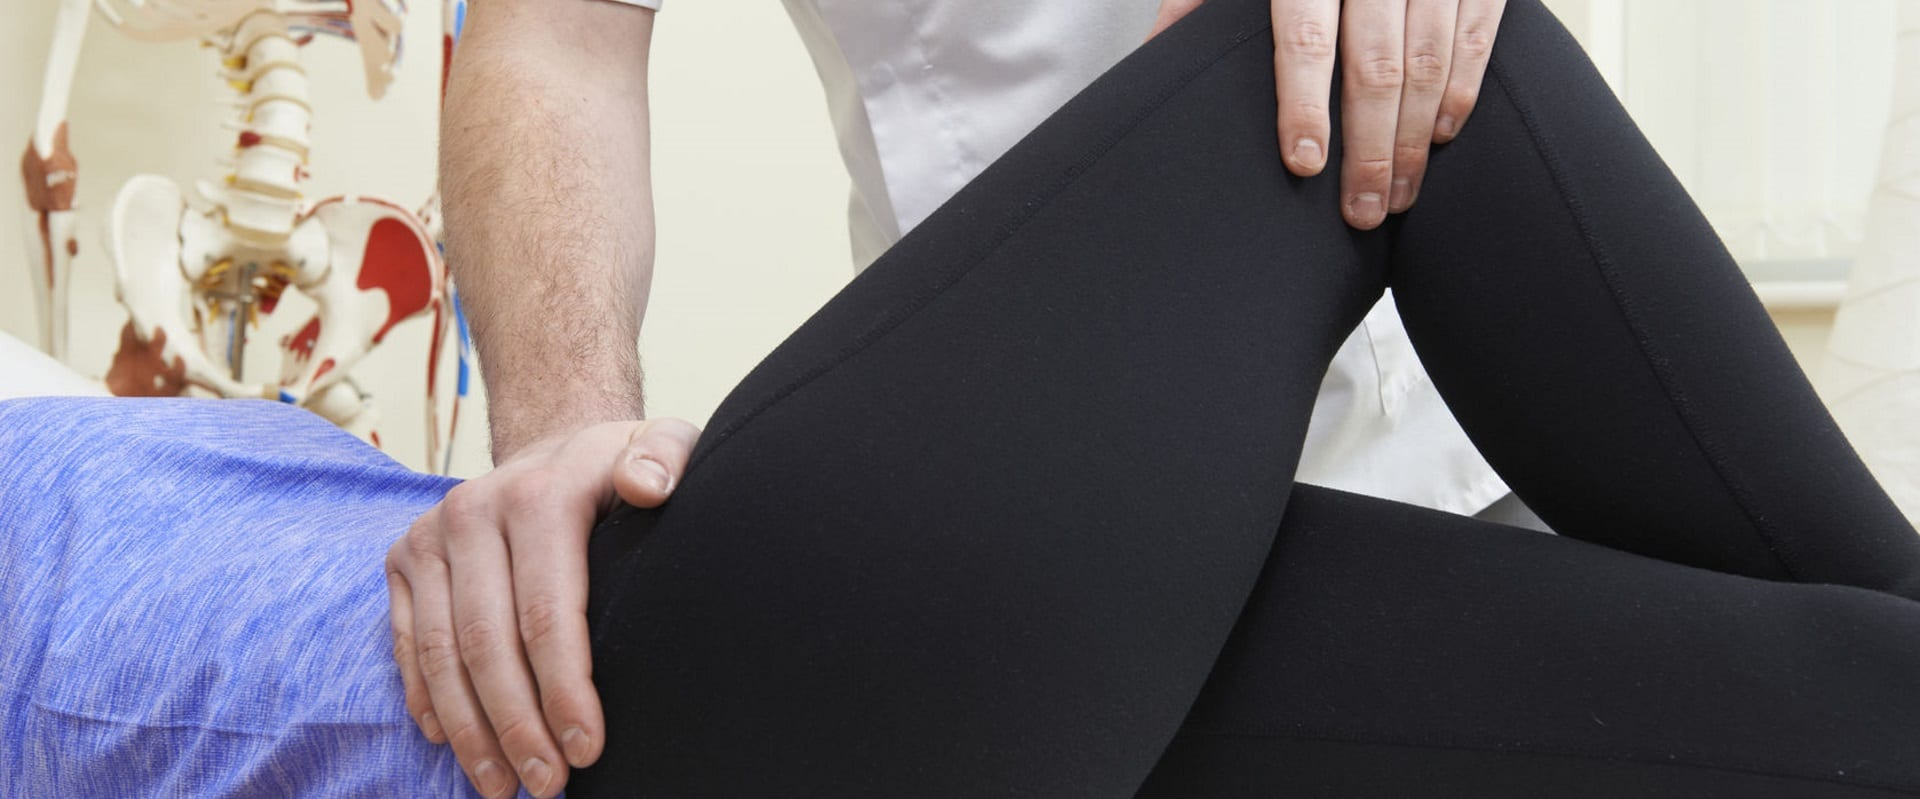 Hip and knee pain: Plympton Osteopathic Clinic